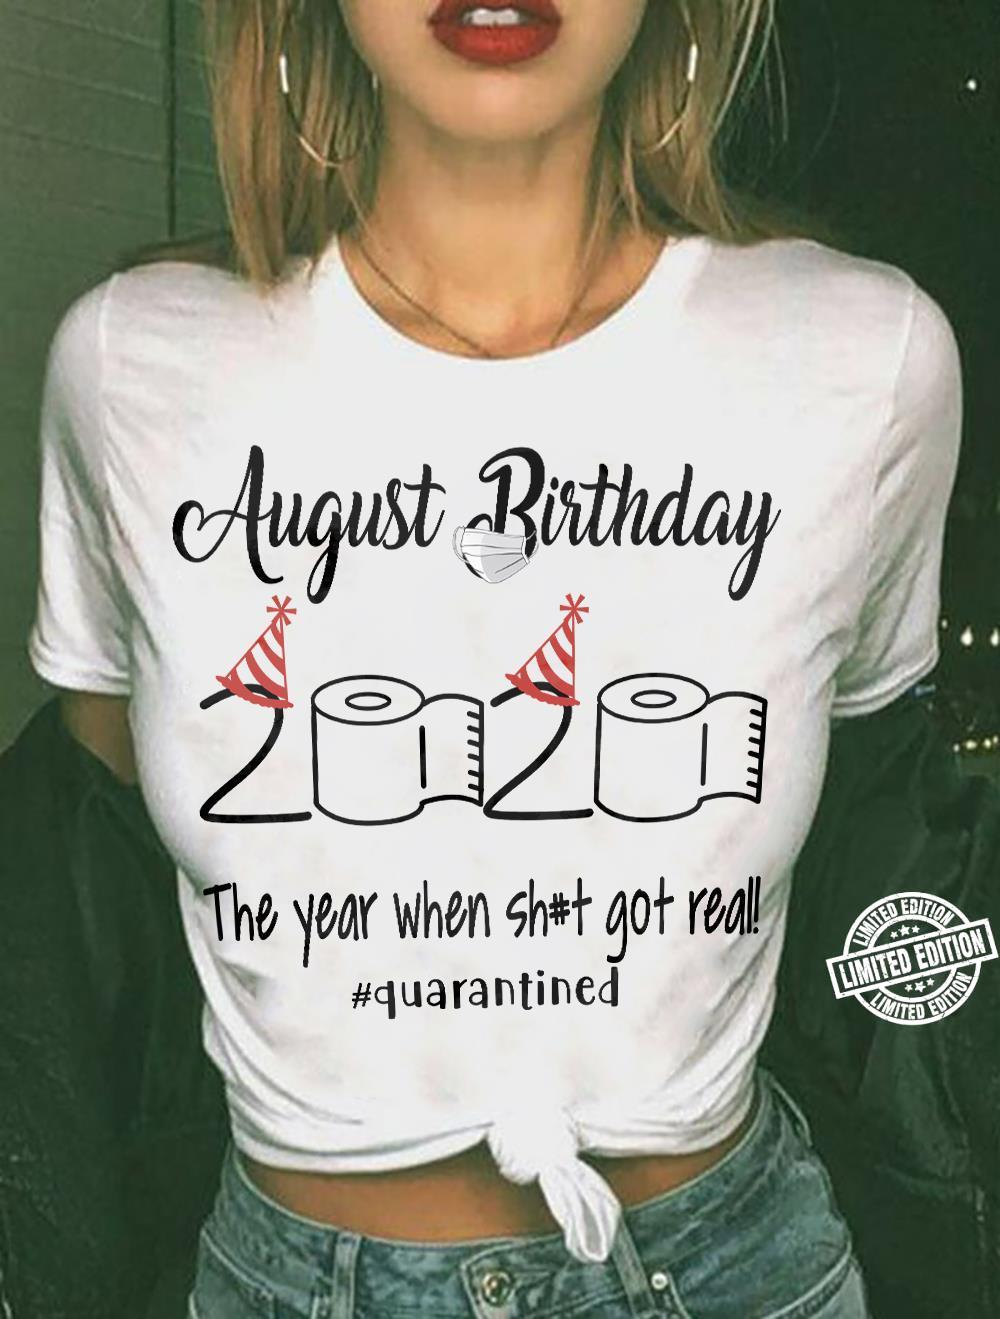 August birthday 2020 the year when shit got real shirt